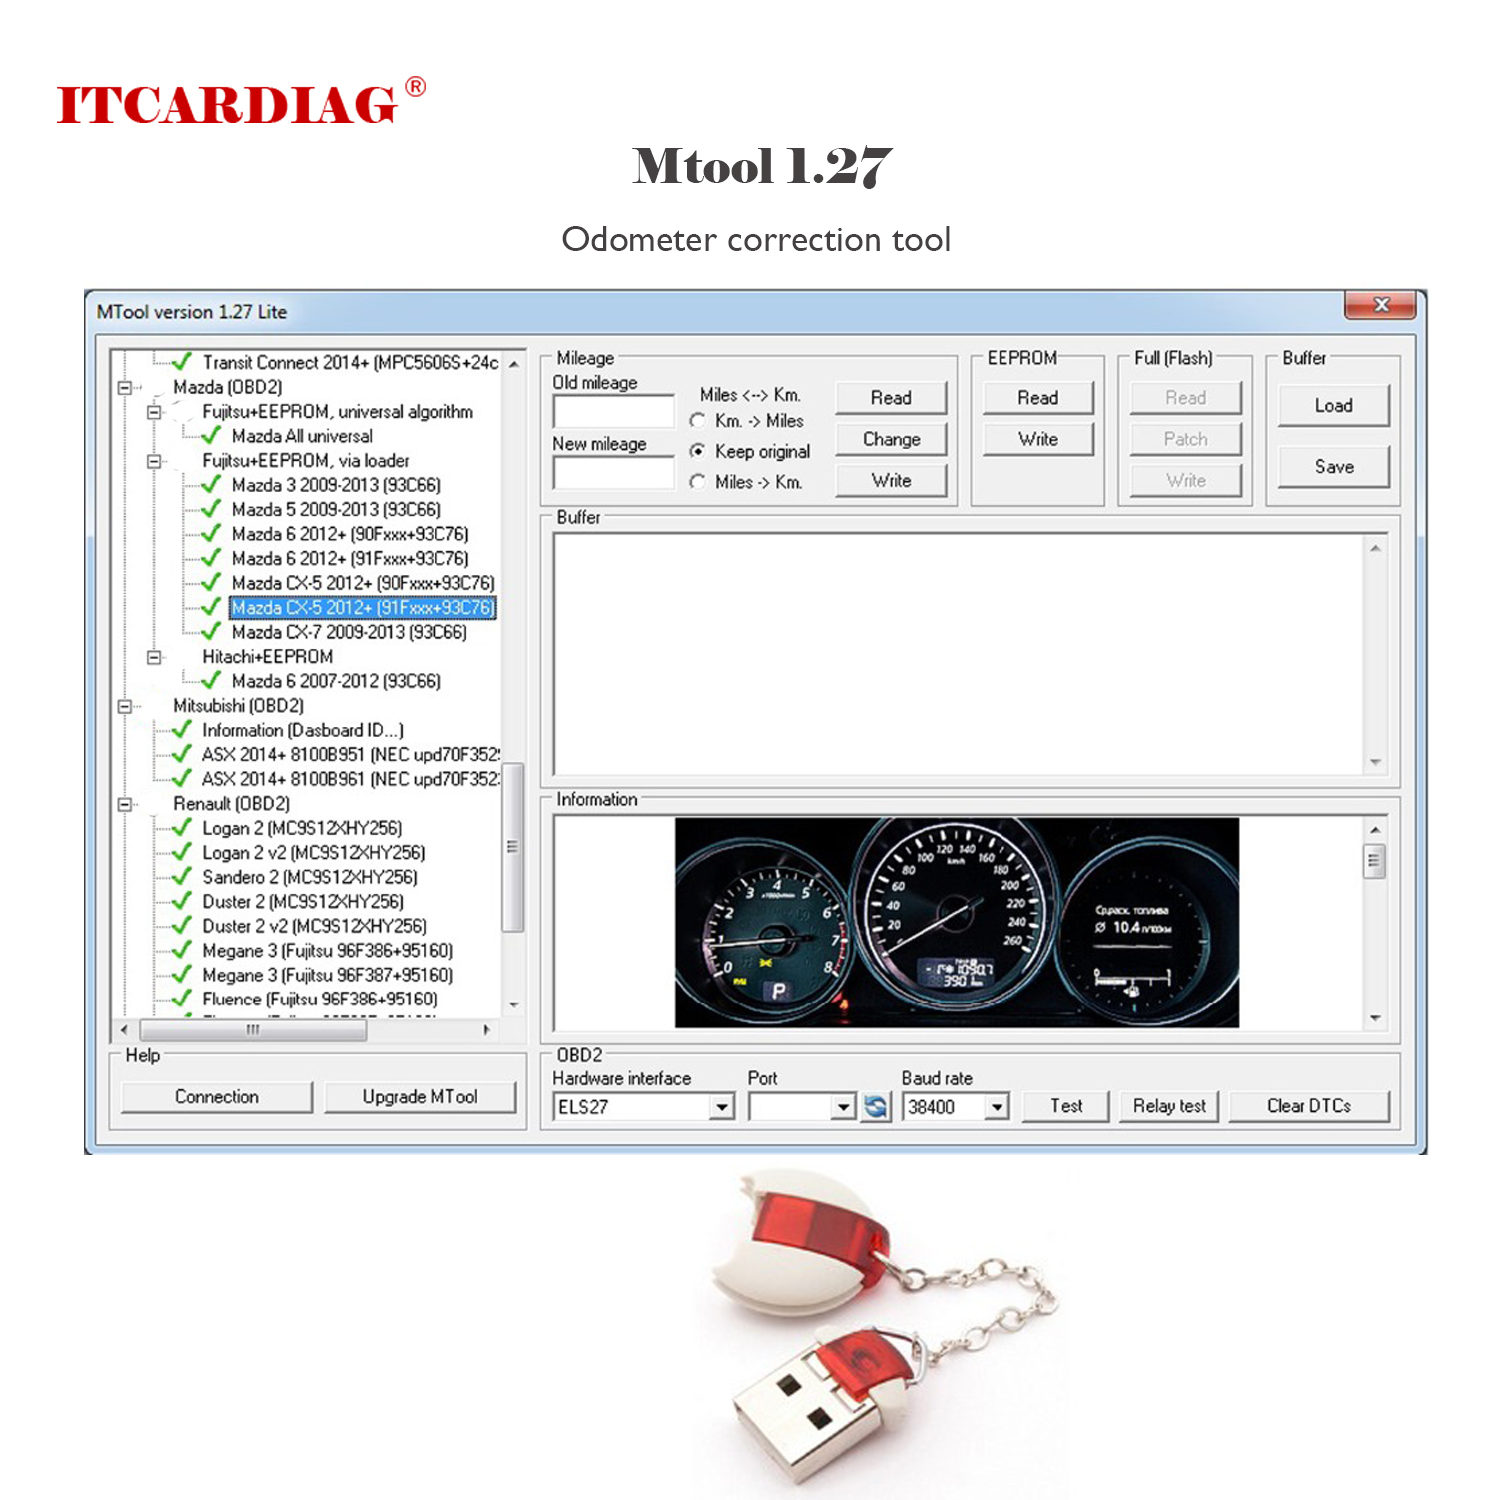 Odometer Correction Software MTool Lite 1.27 Version Mileage Programmer Work To Adjust The Mileage Change Of Cars